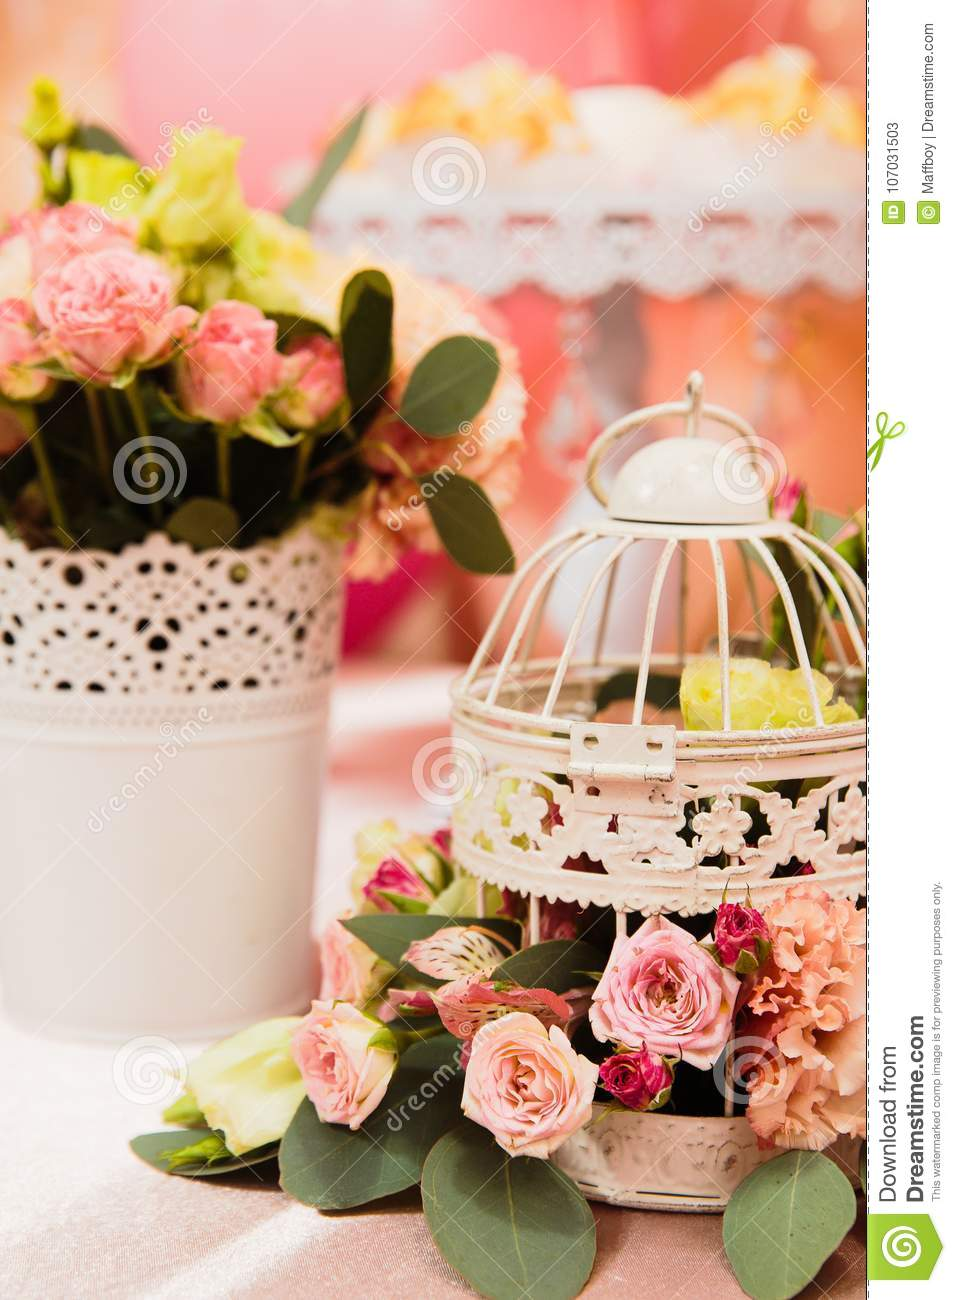 Decor Candy Bar On Girls Stock Image Image Of Trend 107031503